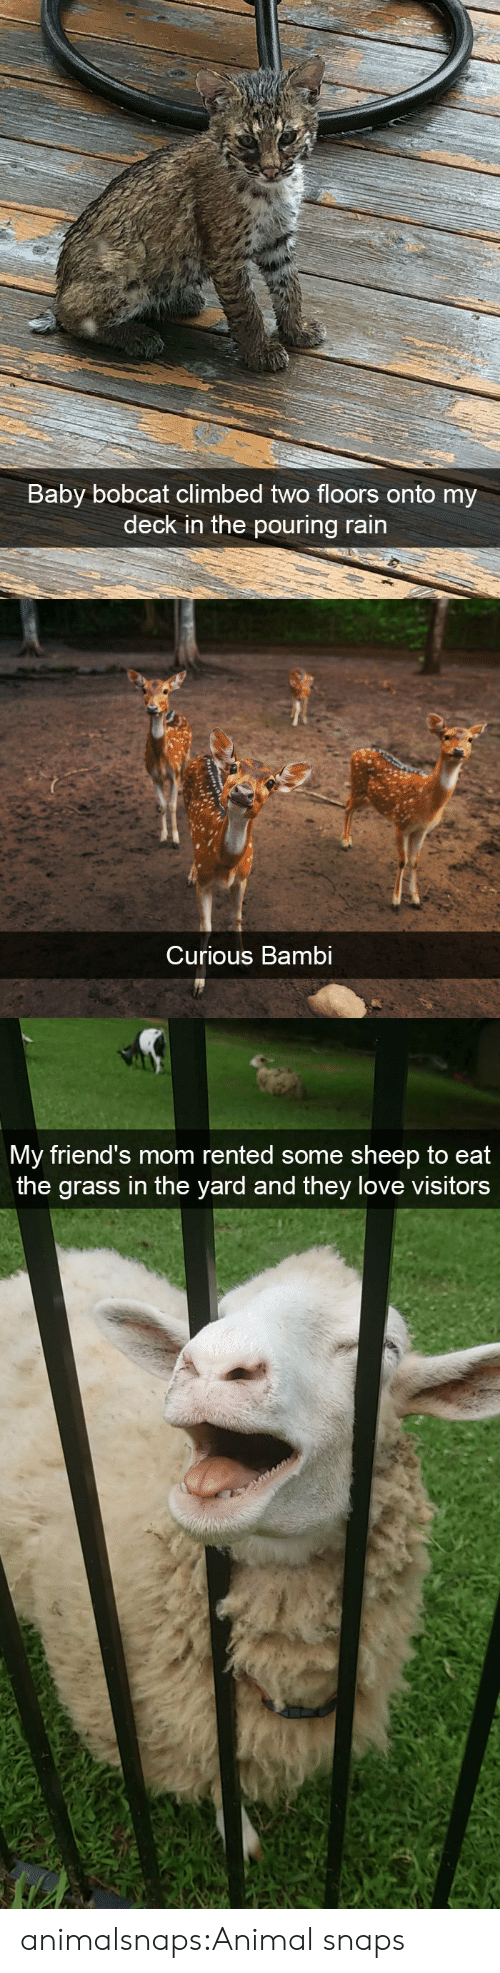 Bobcat: Baby bobcat climbed two floors  deck in the pouring rain  onto my   Curious Bambi   My friend's mom rented some sheep to eat  the grass in the yard and they love visitors animalsnaps:Animal snaps